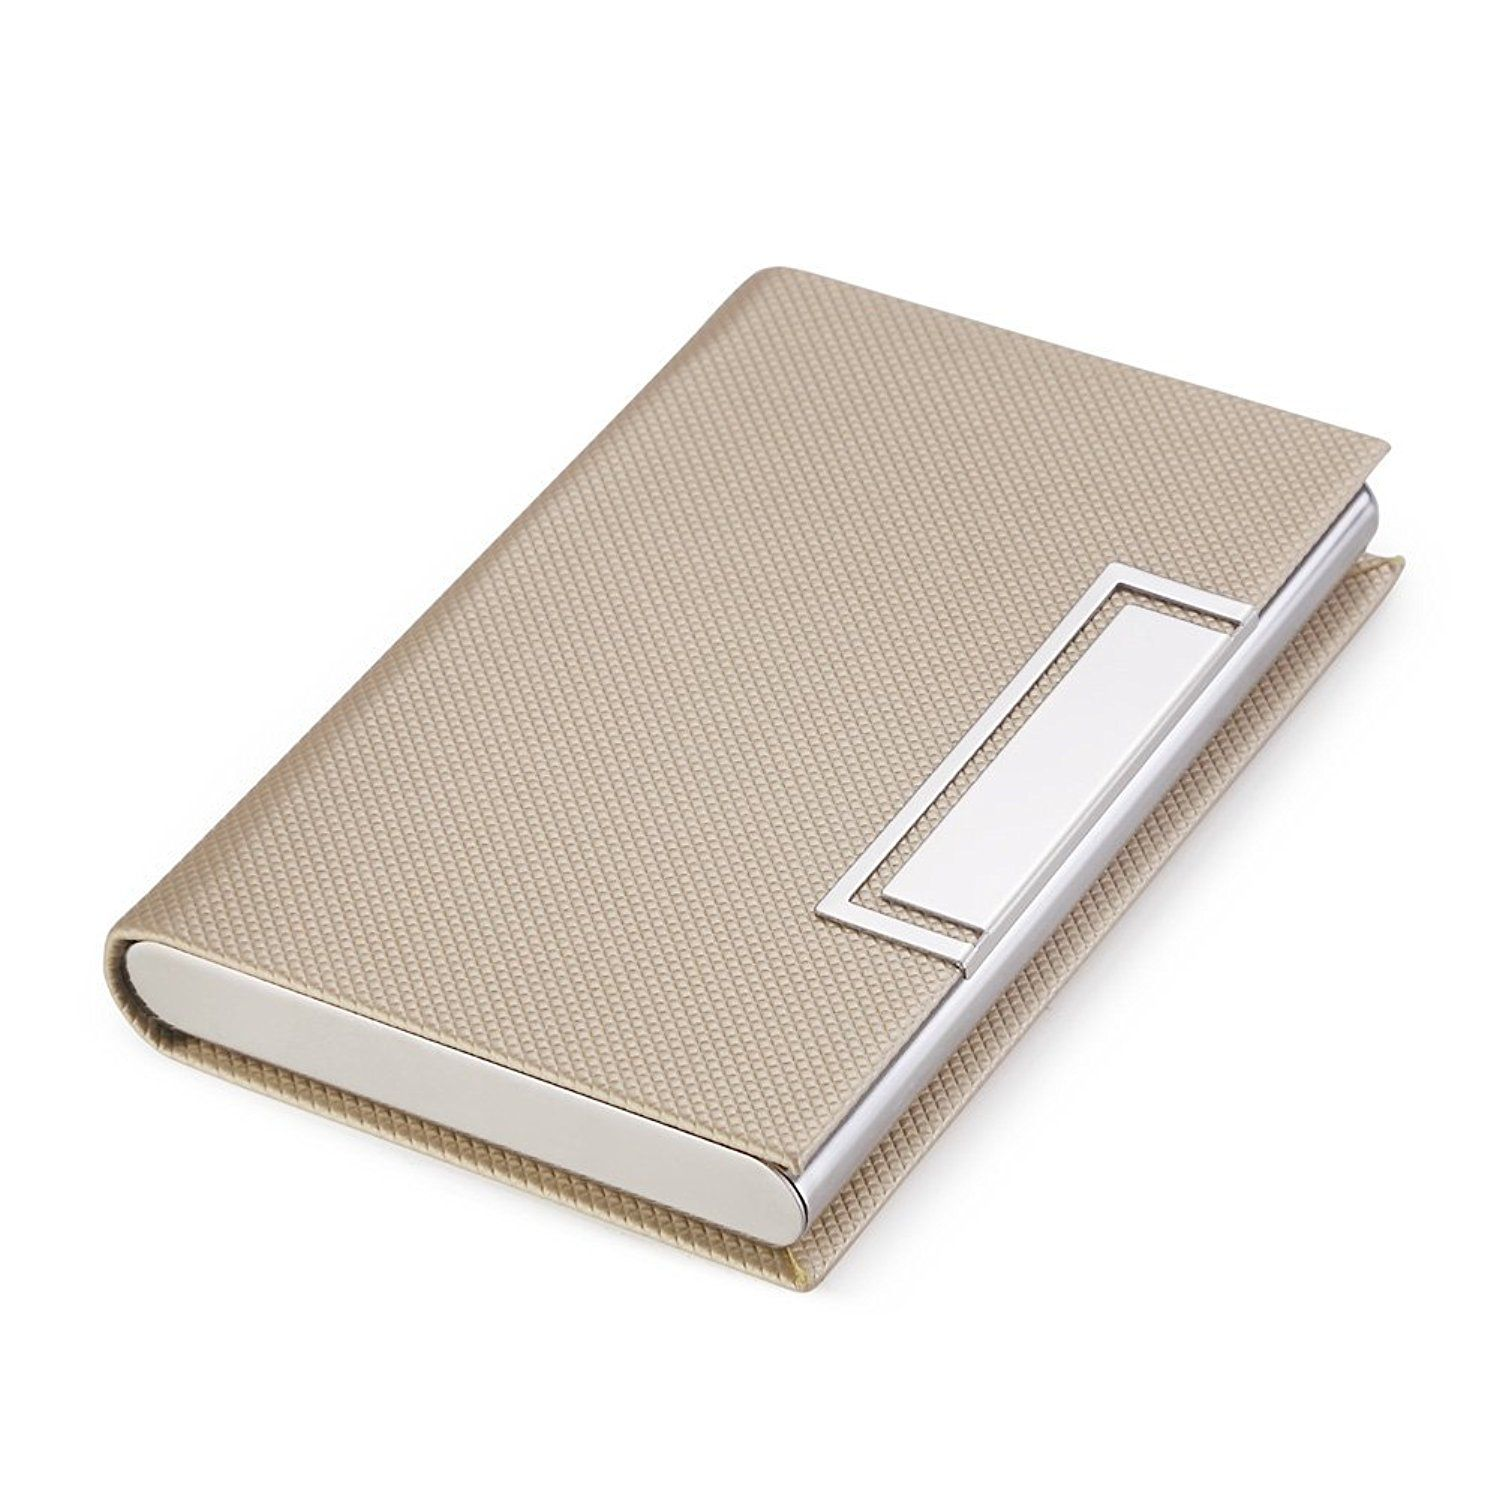 Teemzone Business Name Card Holder Luxury Leather Amp Stainless Steel Multi Card Case Business Name Card Holder Wallet Credit Slim Wallet Men Wallet Leather